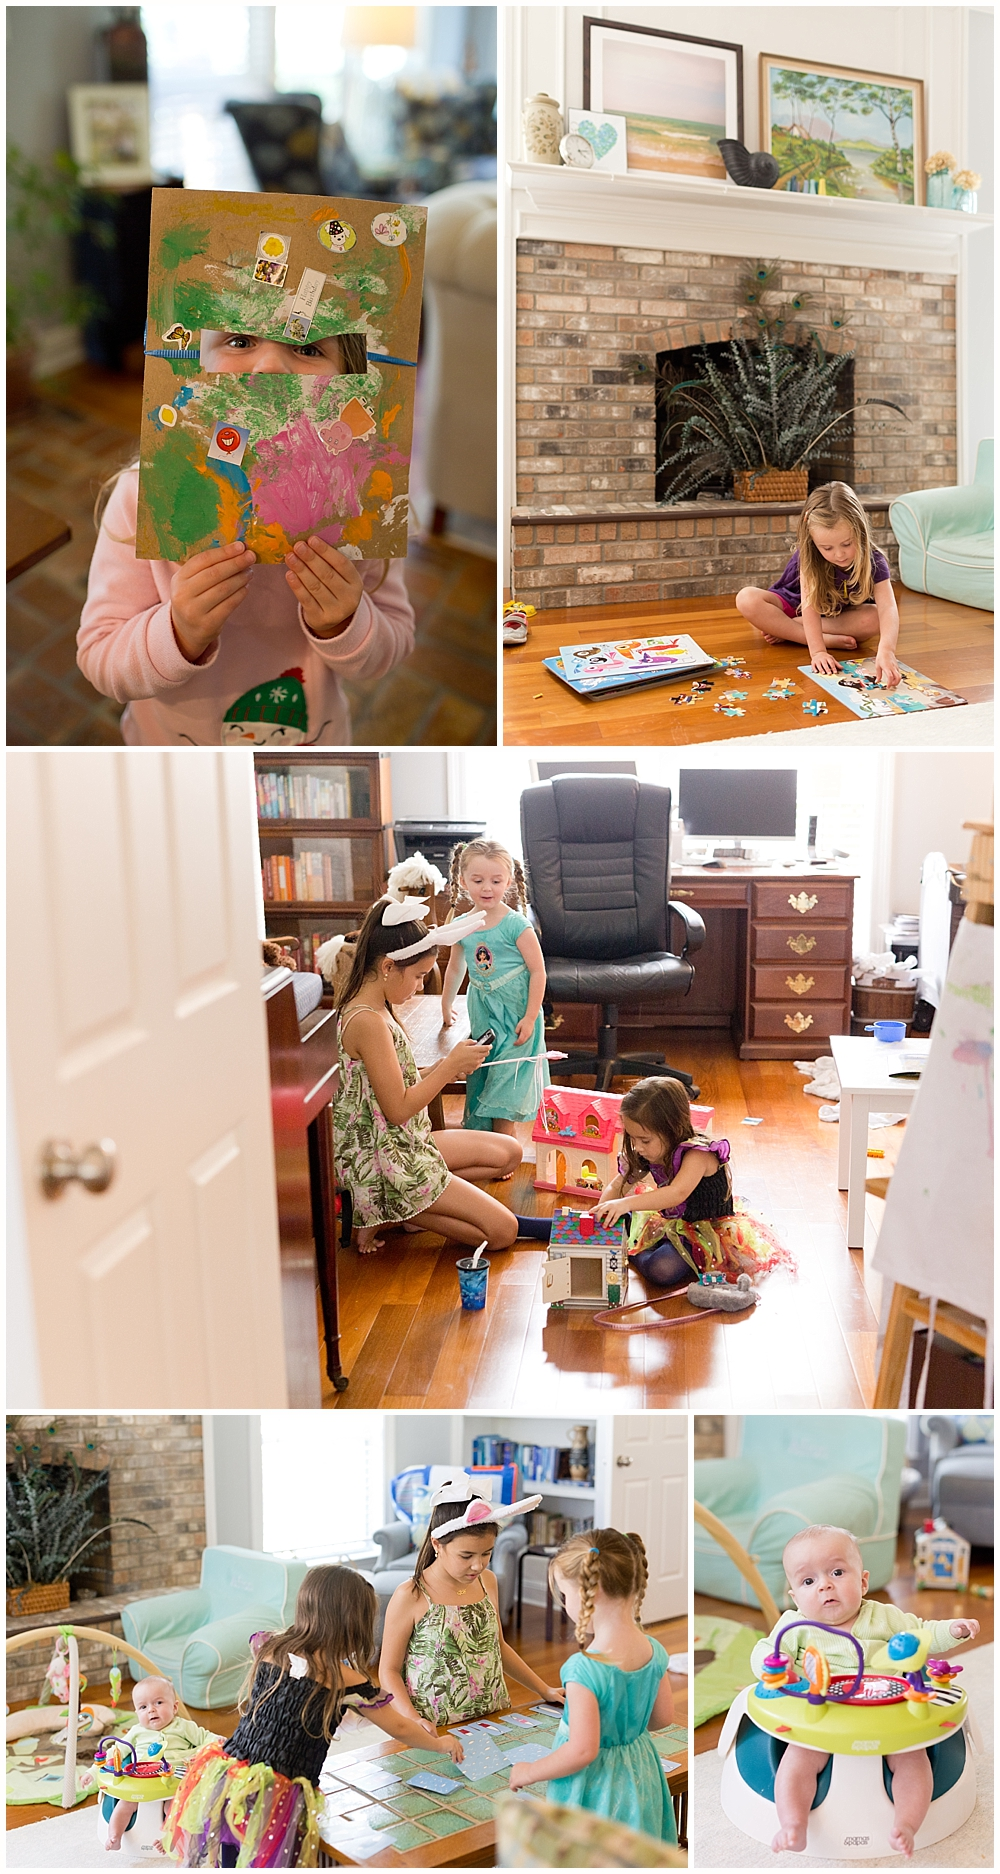 Ocean Springs family lifestyle photographer - kids playing in living room and playroom